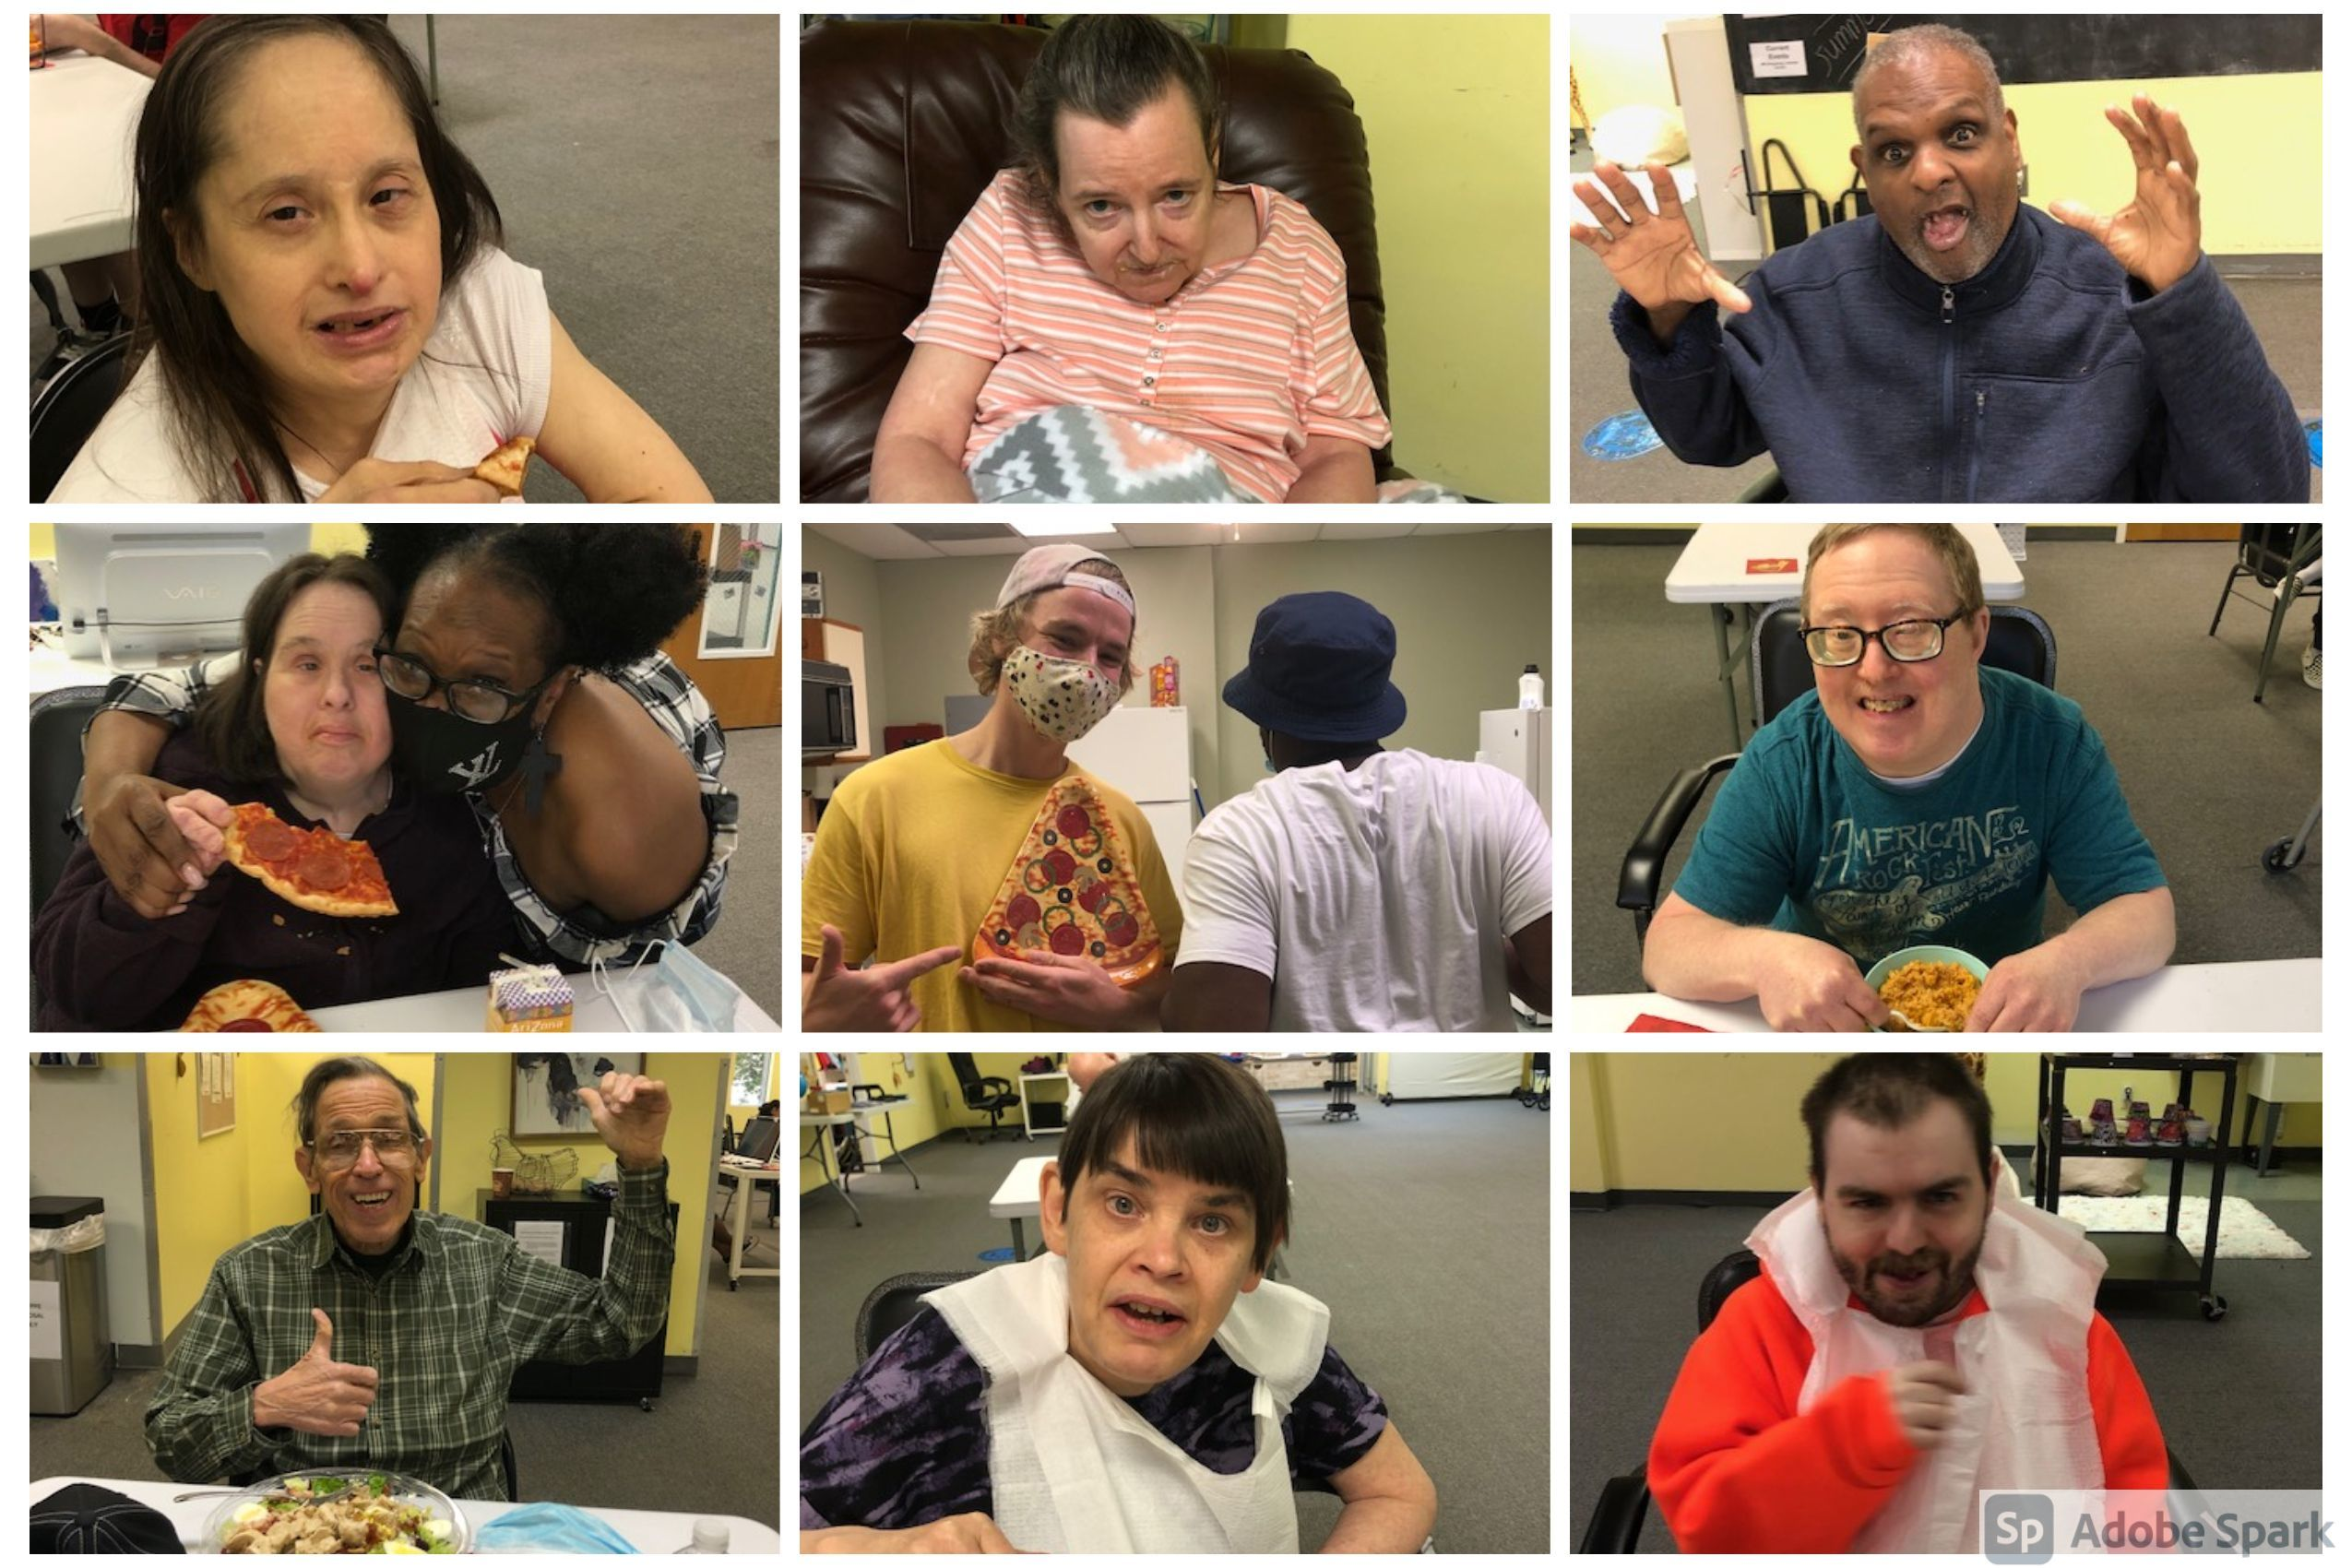 The Arc of Monmouth Celebrates National Pizza Party Day 2021